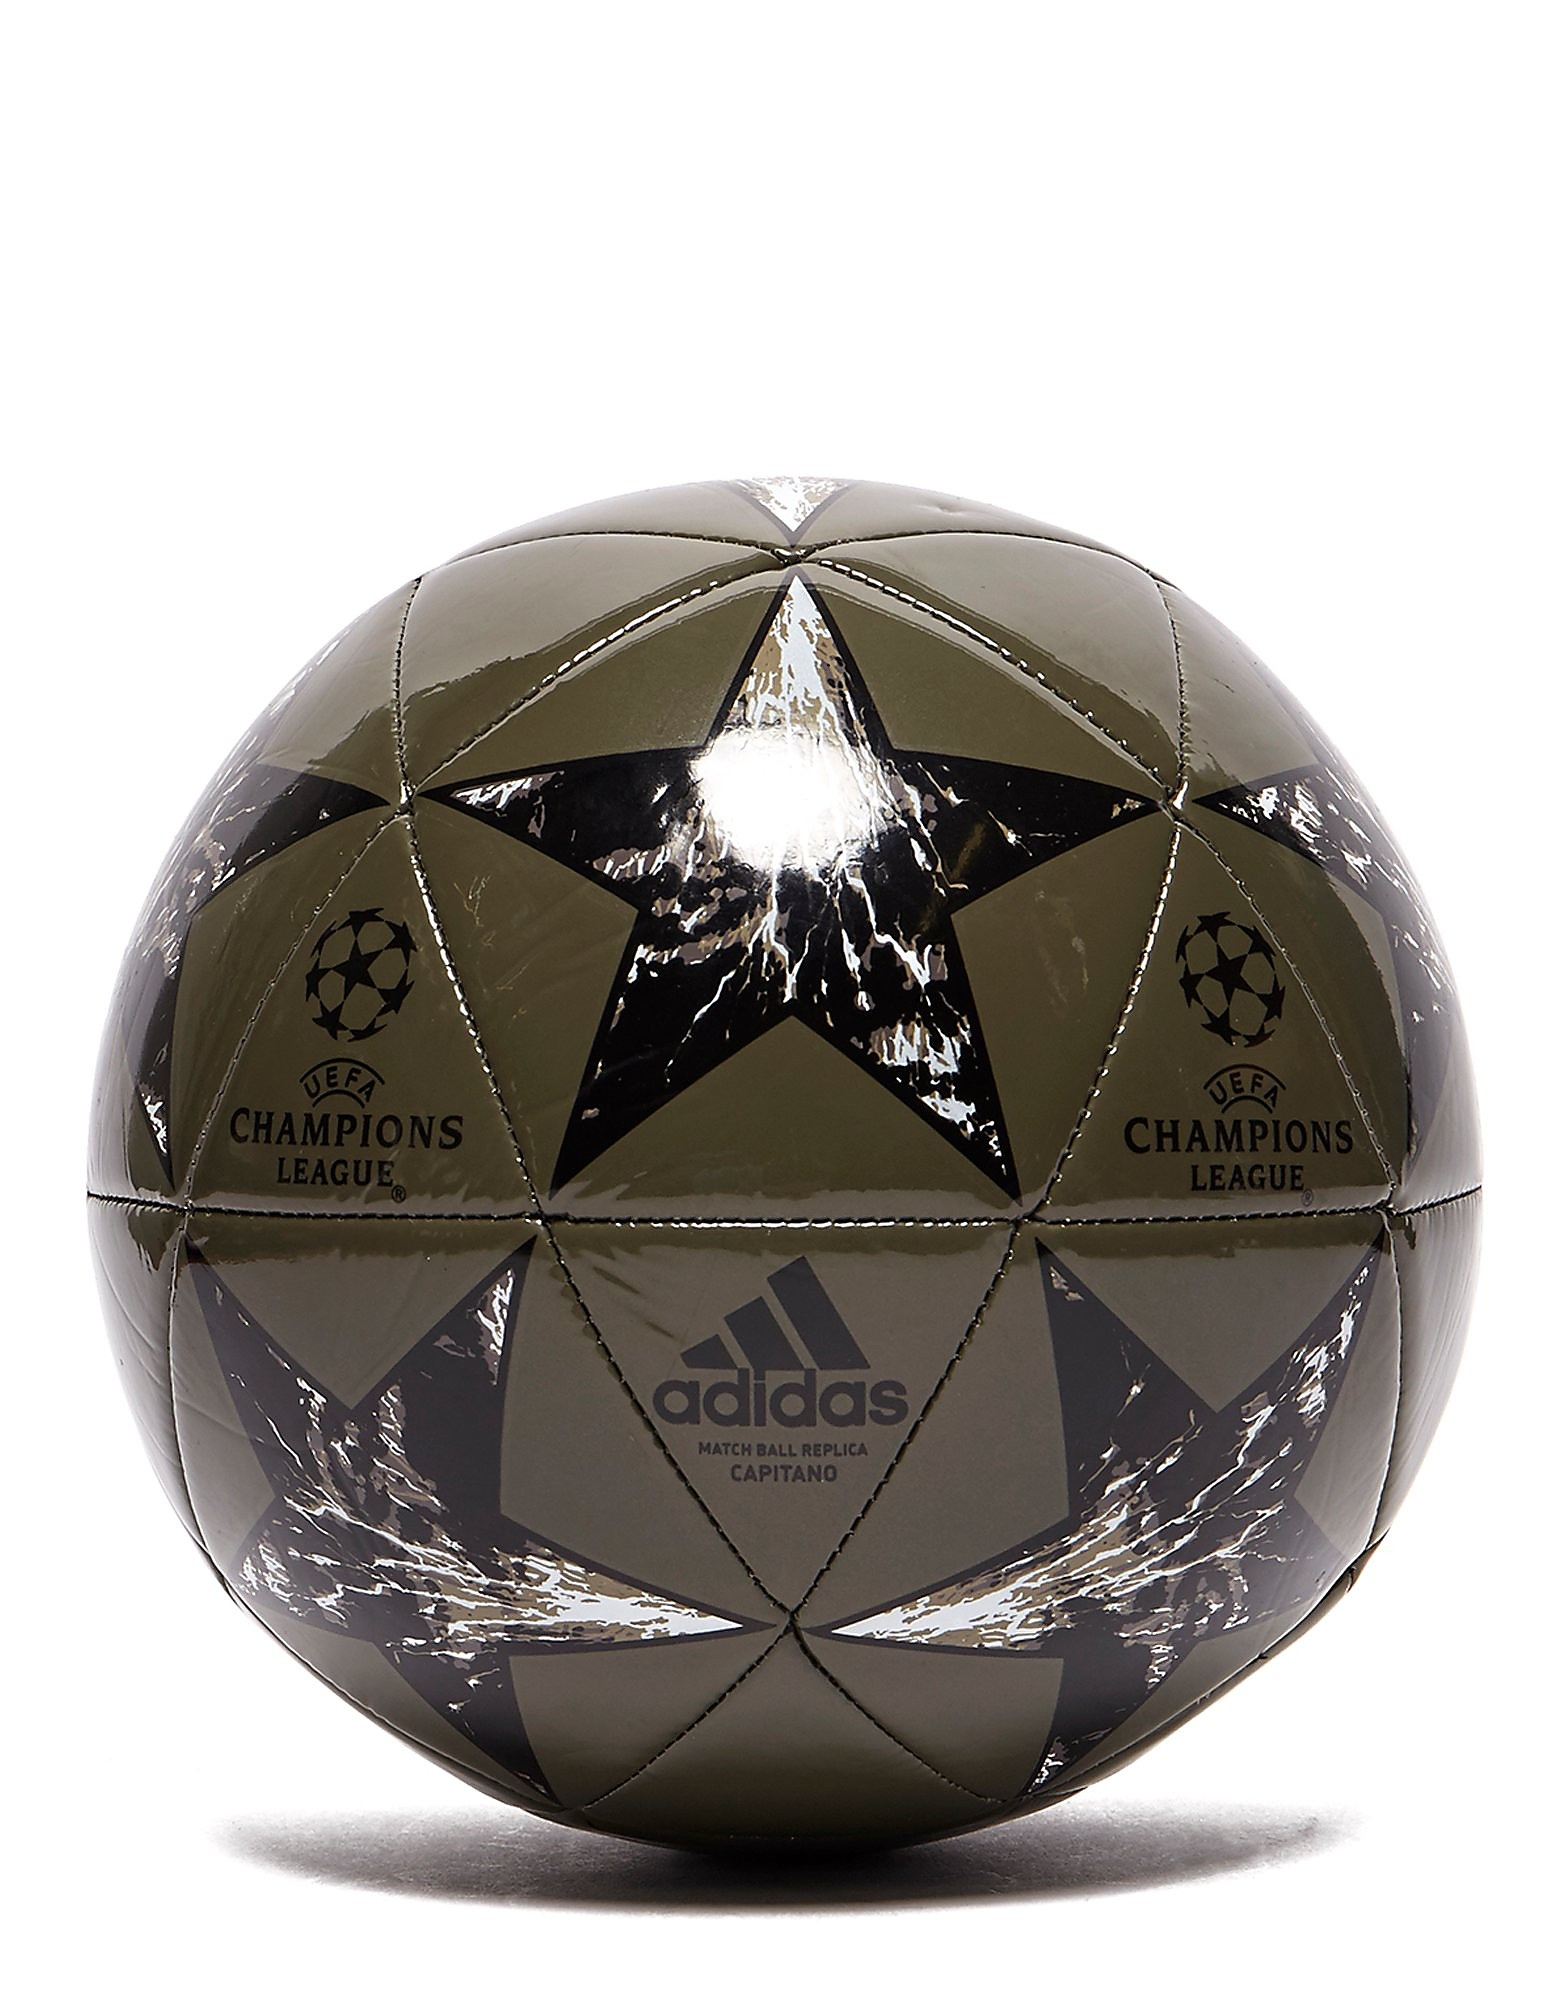 adidas Capitano Champions League Fußball